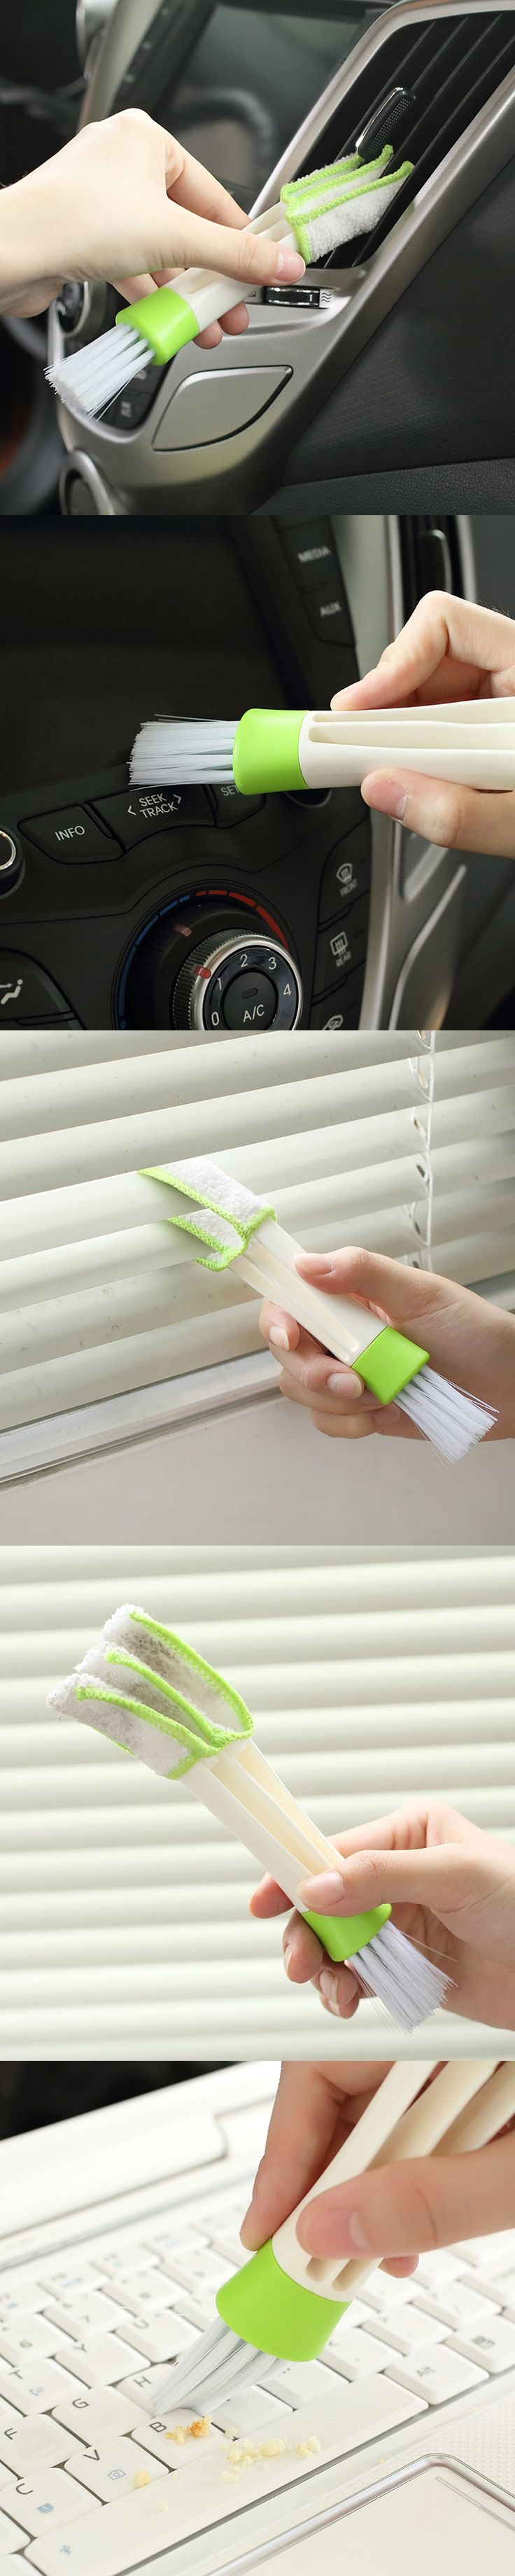 New Arrive Double Slider Car Air Conditioning Outlet Venetian Window Cleaning Brush Multi-purpose Blind Brush Dust Brush